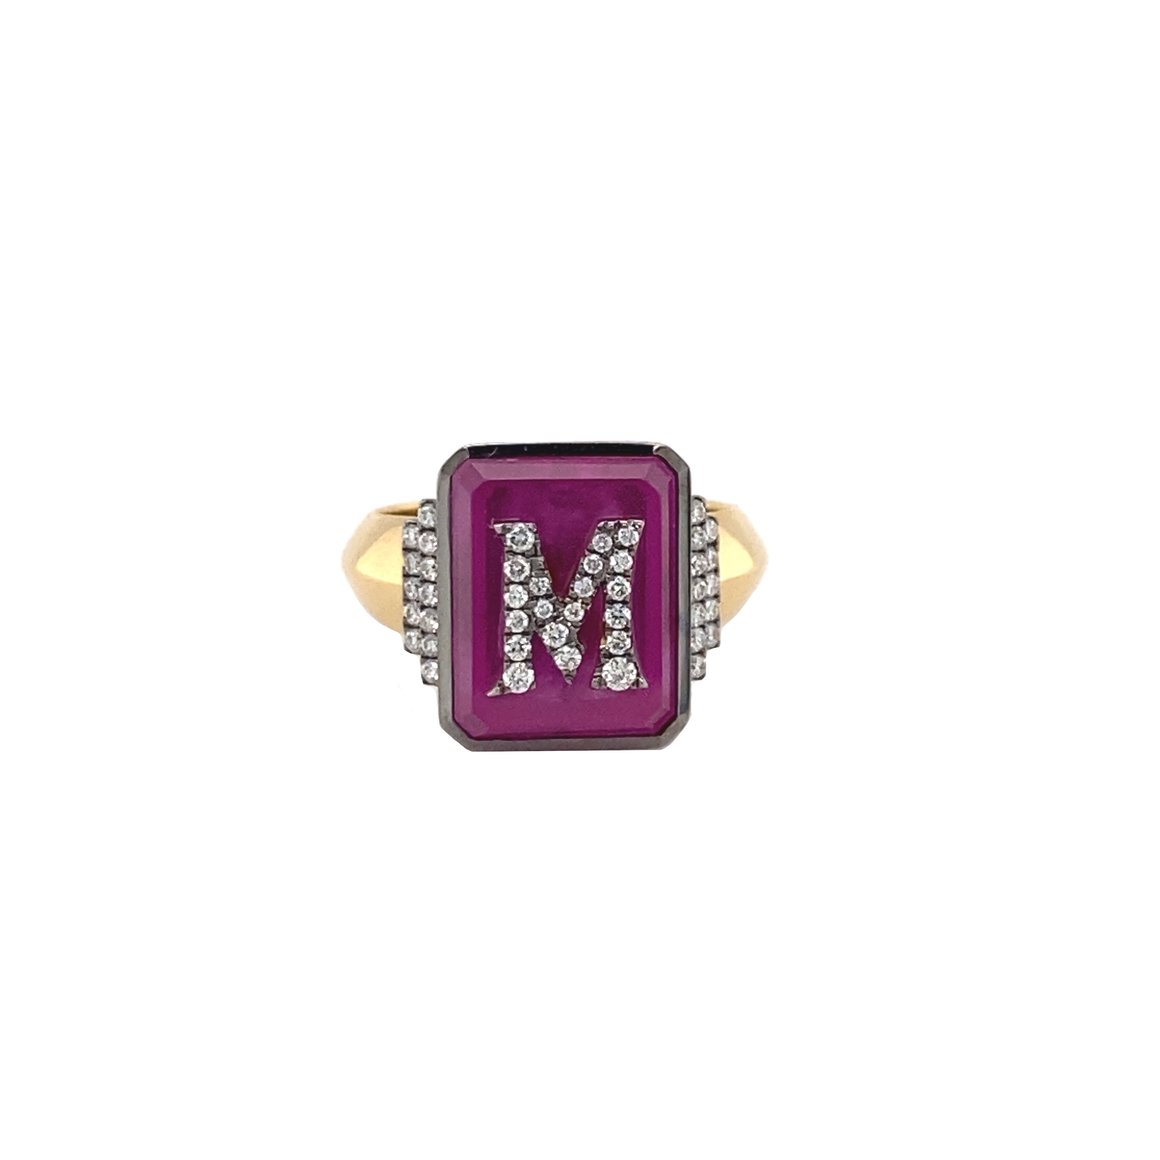 Pink Topaz Signet Ring - Lesley Ann Jewels